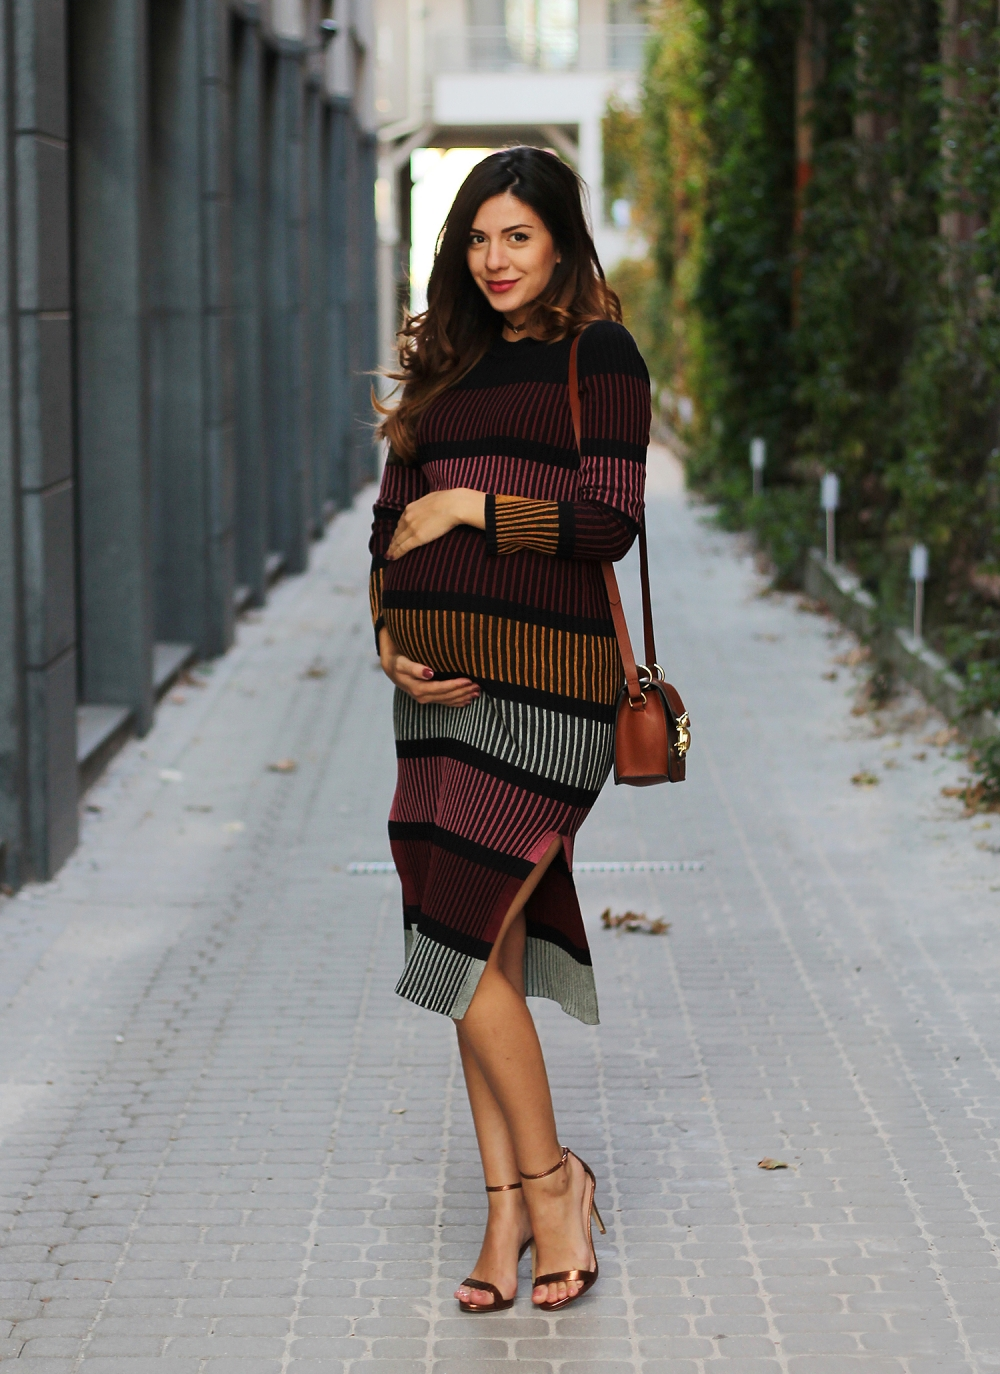 Pregnancy outfit: colorful dress and rose gold heels / 8th month